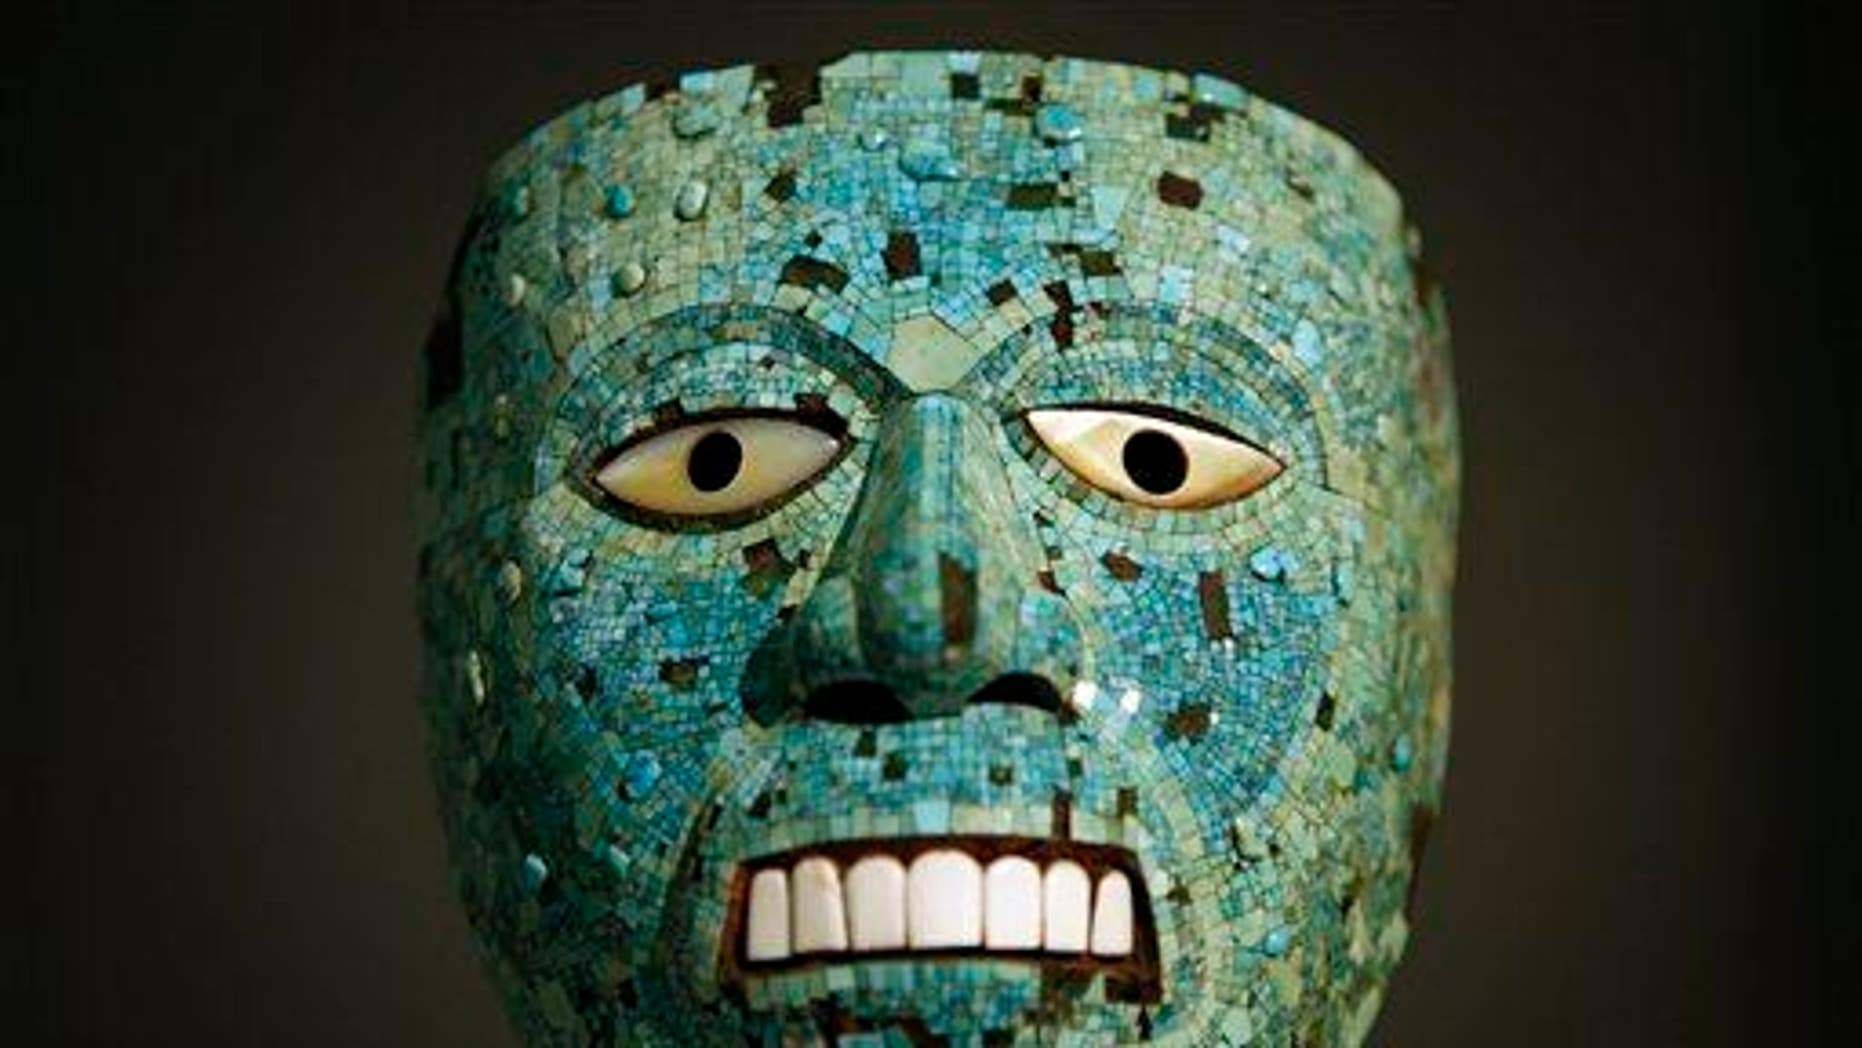 File photo of a turquoise mask, probably representing the sun god Tonatiuh, at a museum exhibit on the Aztecs.